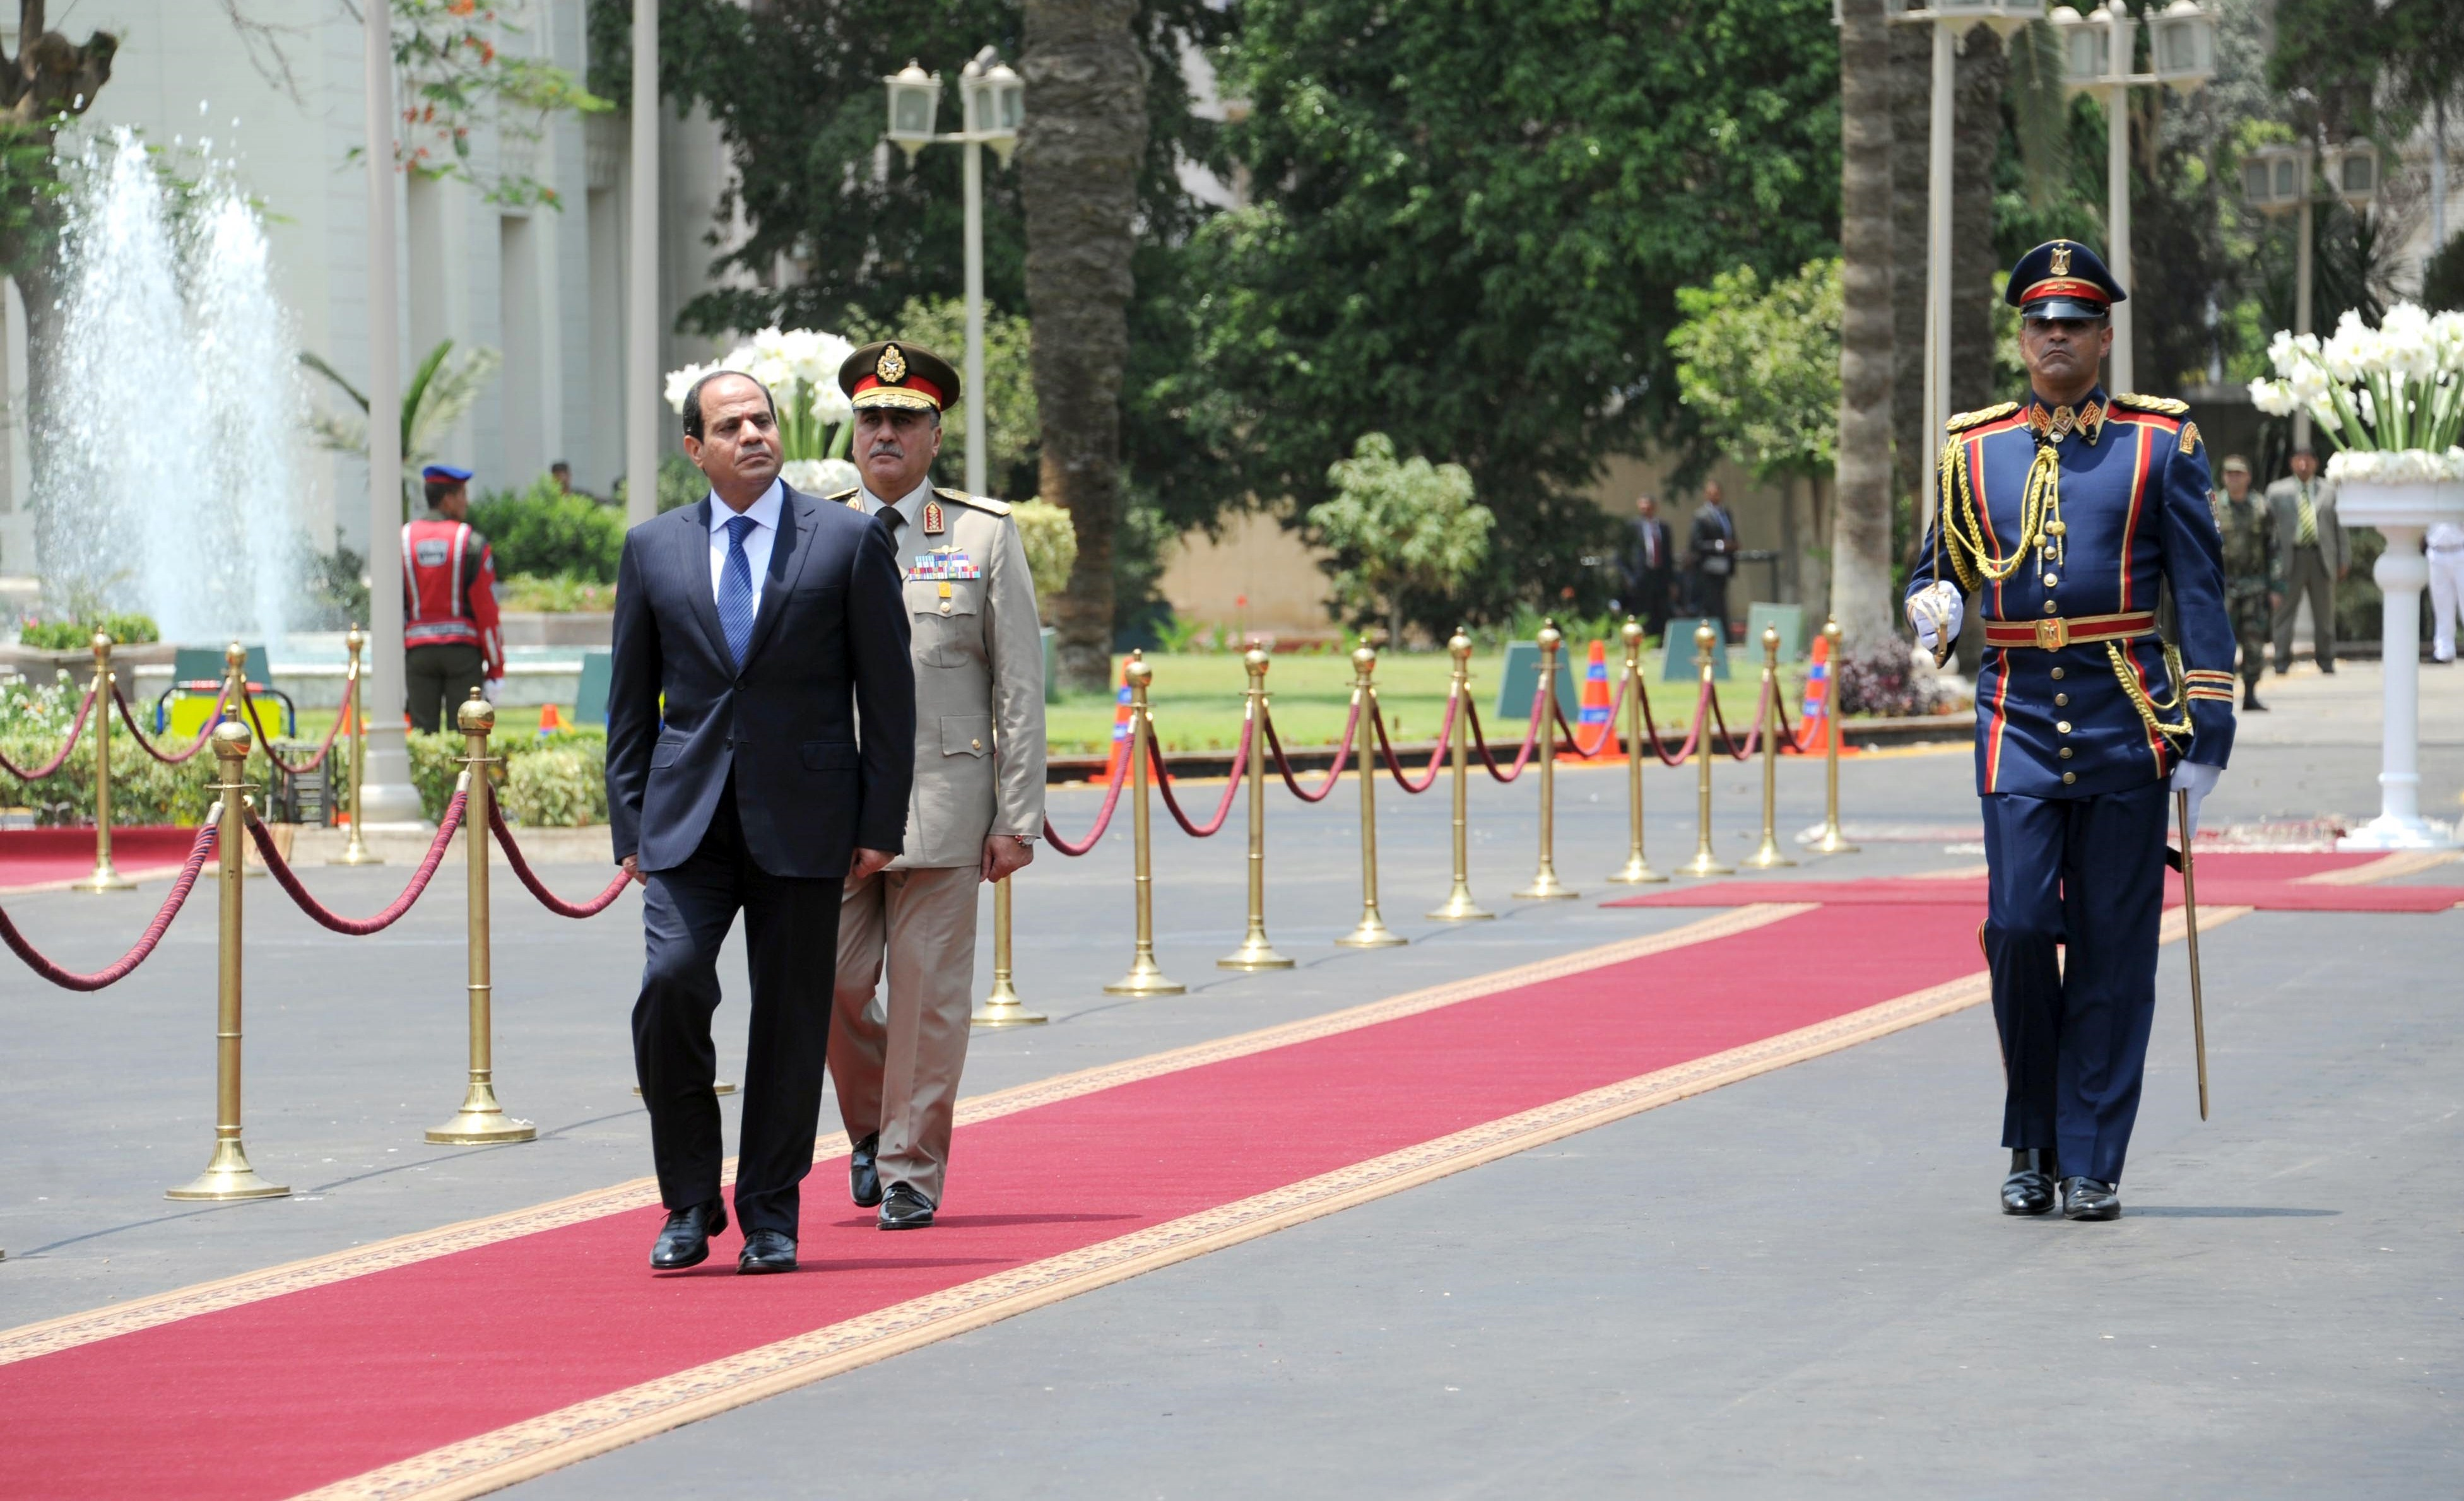 A handout picture made available on June 8, 2014 by the Egyptian presidency shows President elect Abdel Fattah al-Sisi (L) reviewing the honour guard during the handing over of power ceremony in Cairo. Sisi was sworn in as Egypt's president, formalising his de facto rule since he deposed the elected Islamist last year and crushed his supporters.   (AFP PHOTO / HO / EGYPTIAN PRESIDENCY)